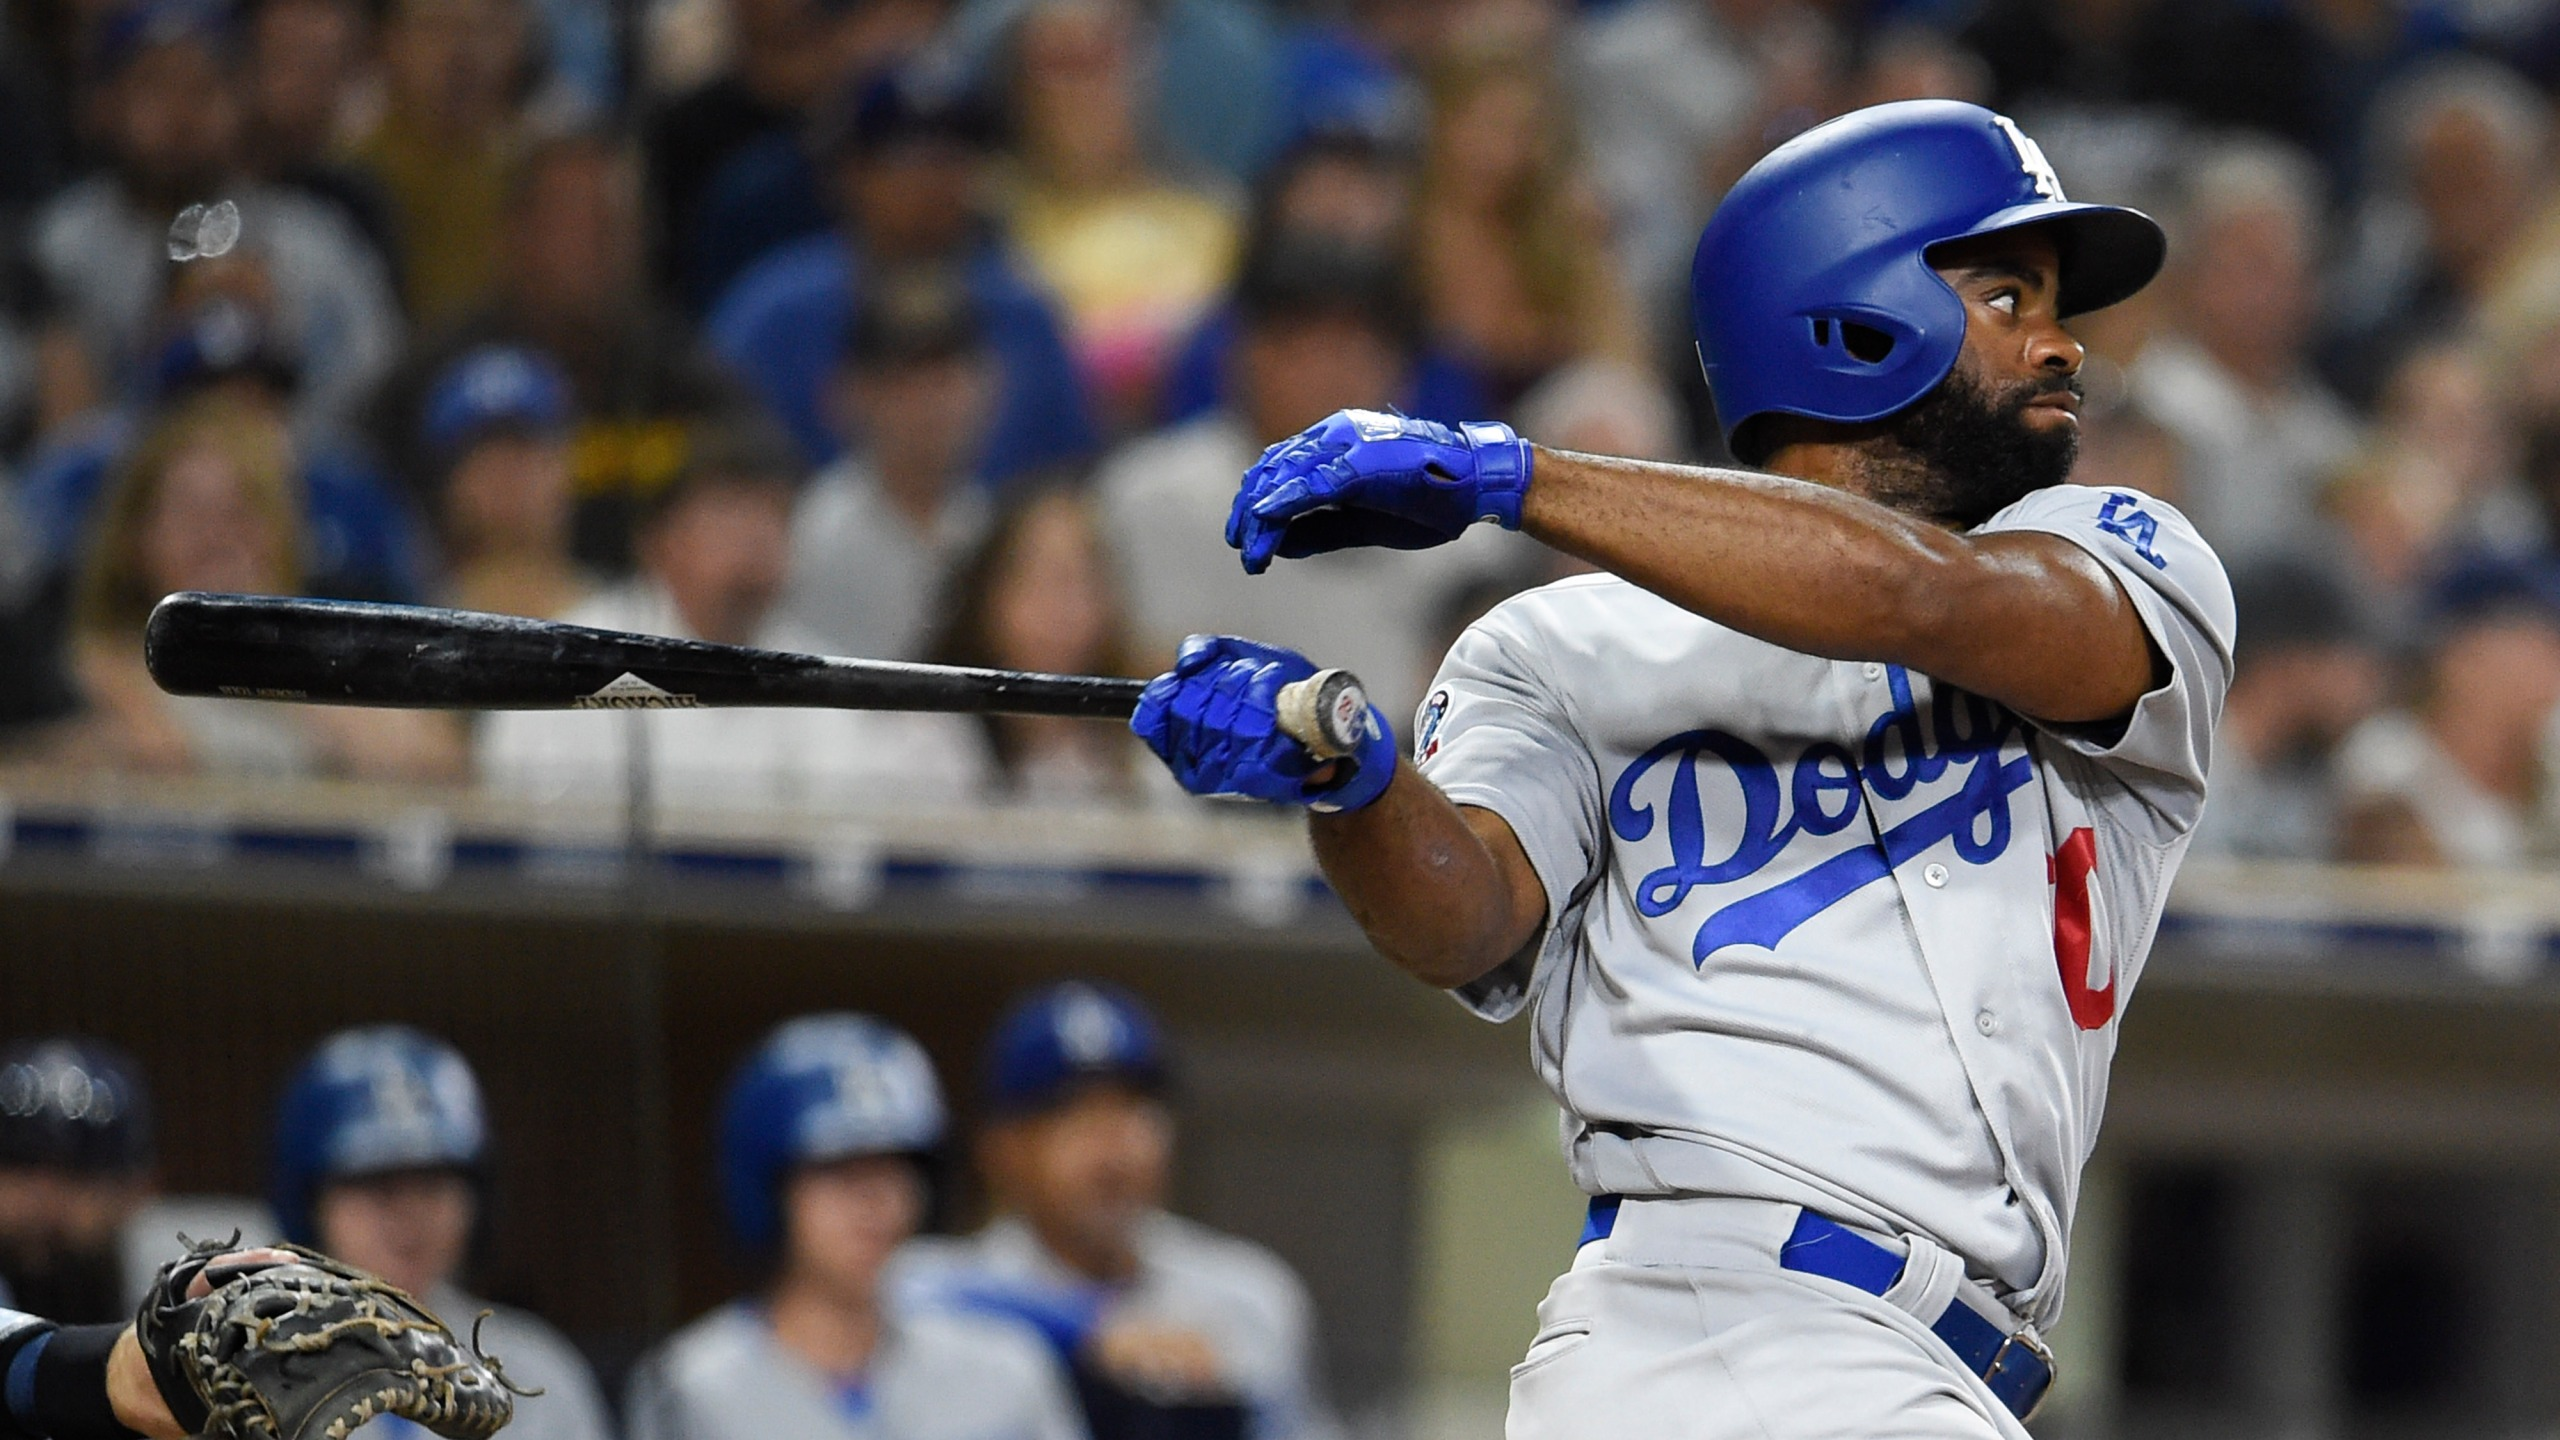 Andrew Toles of the Los Angeles Dodgers hits an RBI single during the seventh inning of a baseball game against the San Diego Padres at Petco Park on July 12, 2018 in San Diego. (Denis Poroy/Getty Images)